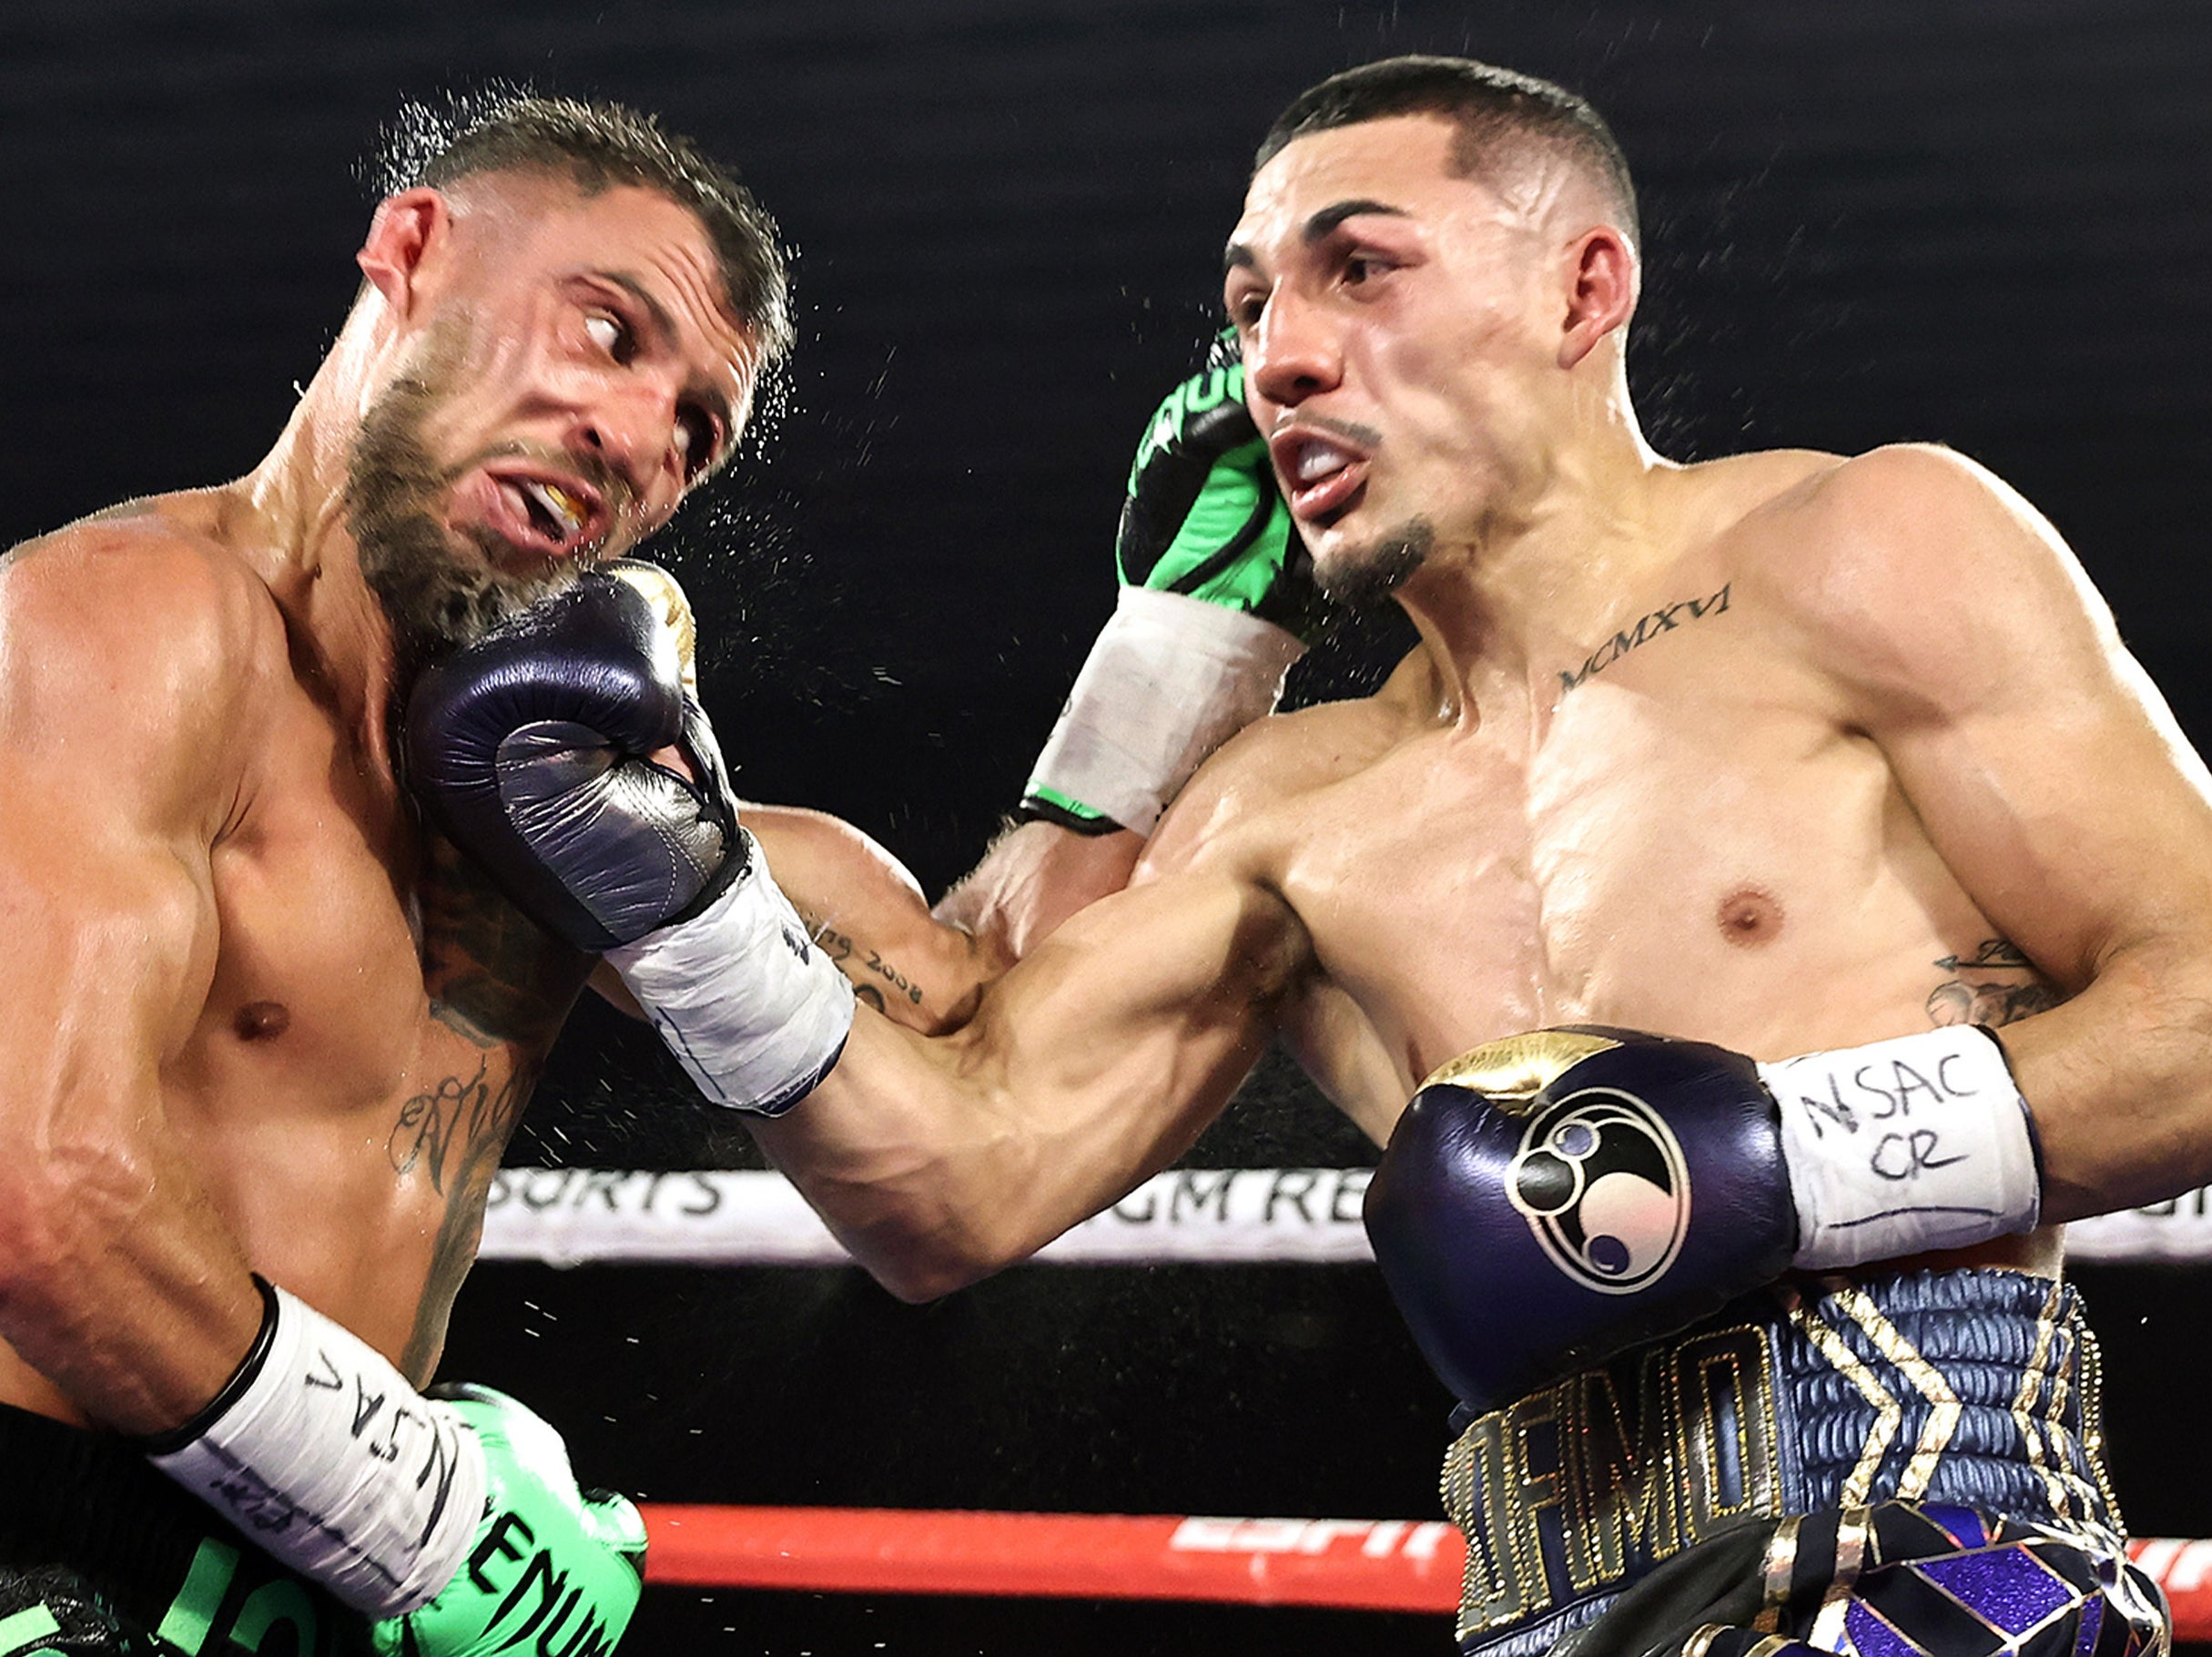 Teofimo Lopez wins battle of minds against Vasyl Lomachenko as he turns the impossible into the routine